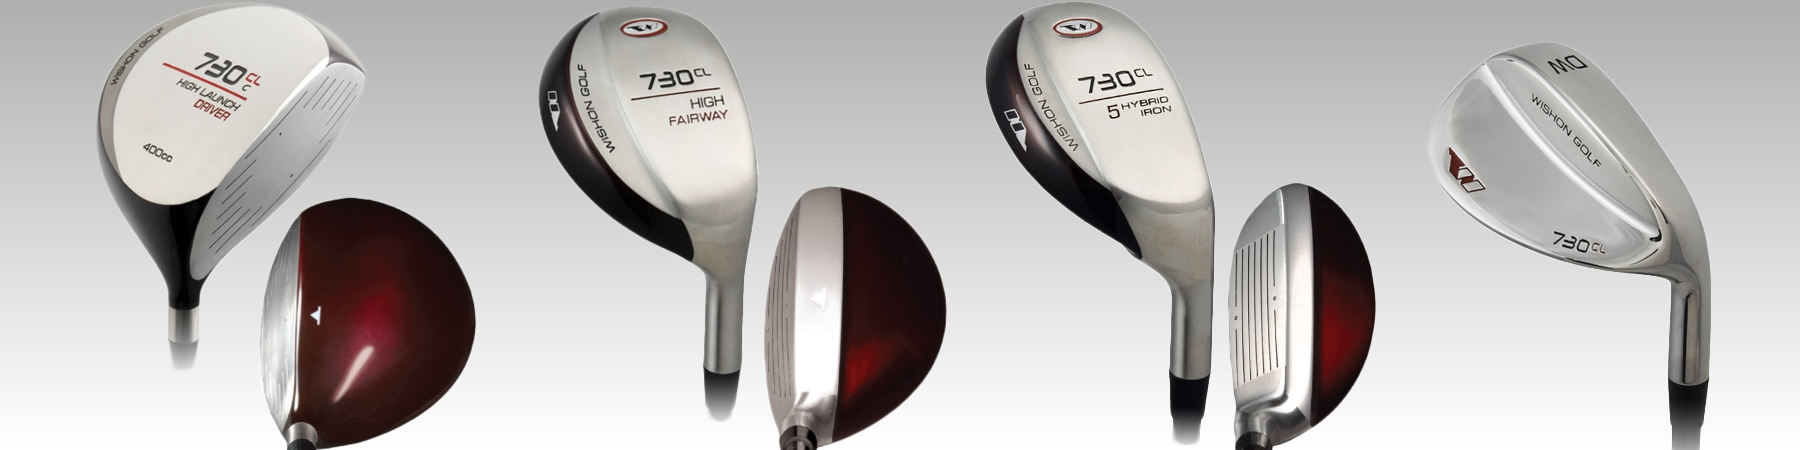 Wishon 740CL Clubs